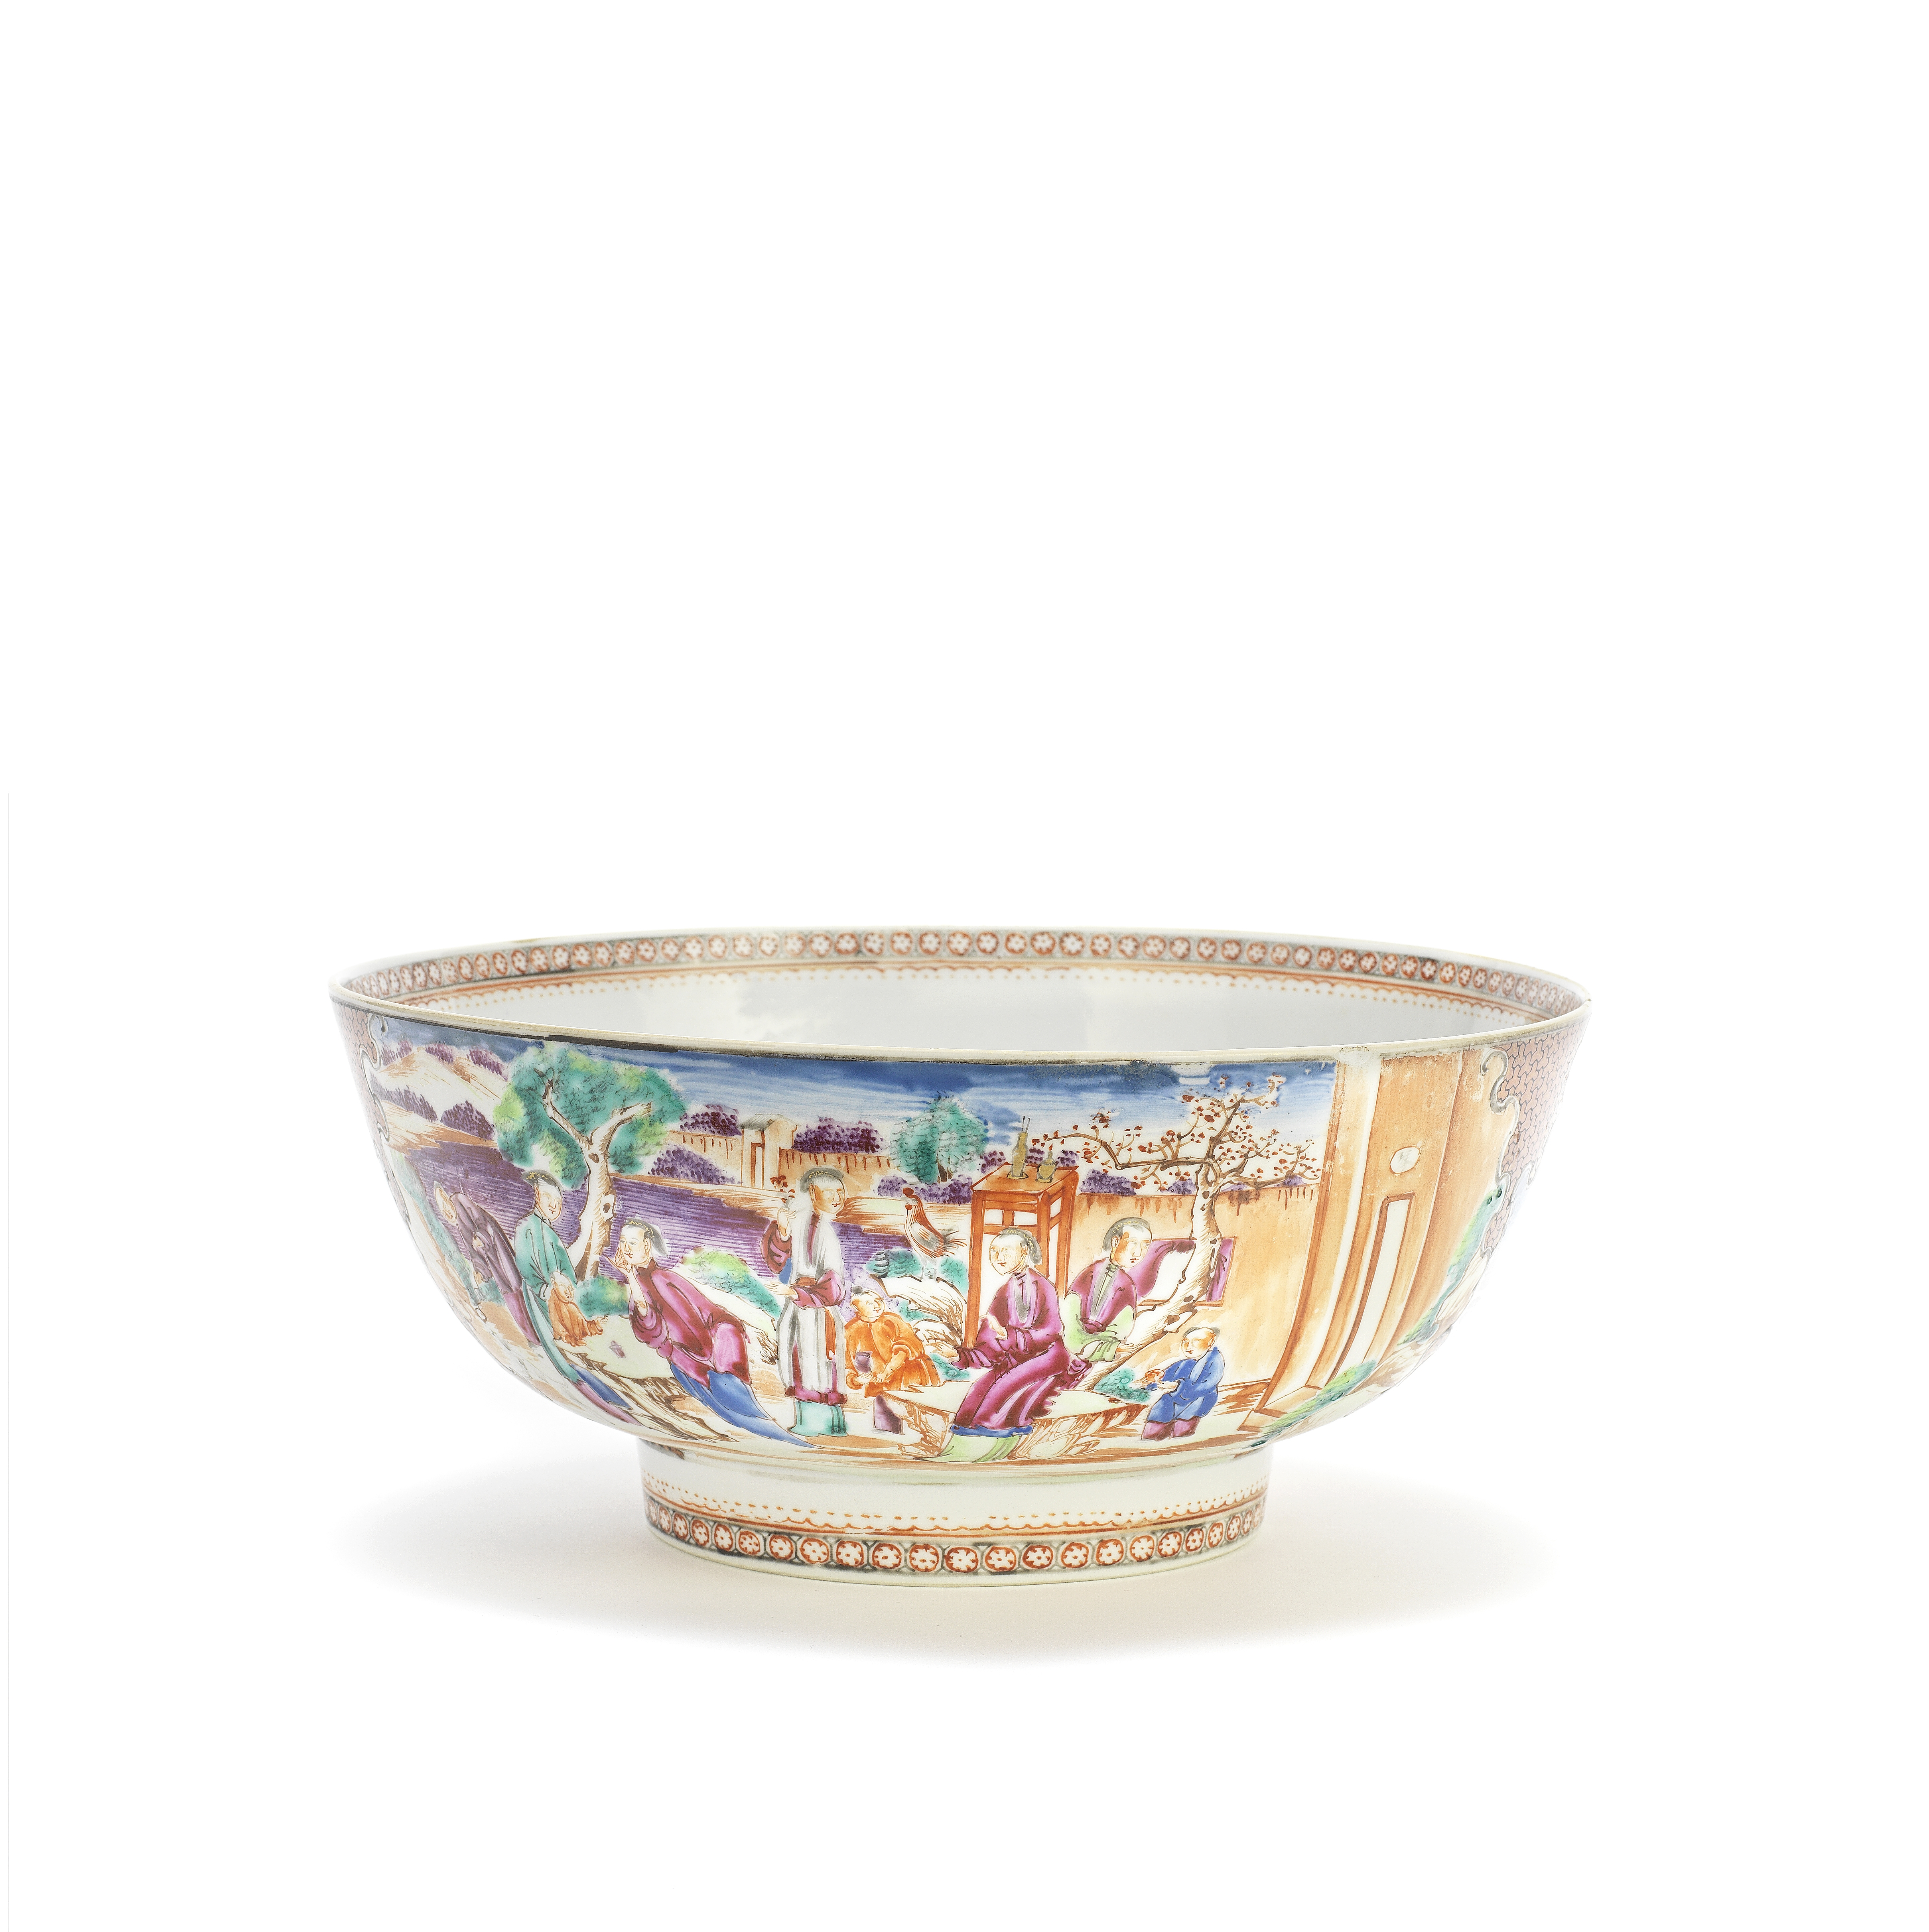 A FAMILLE ROSE EXPORT PUNCH BOWL 18th century